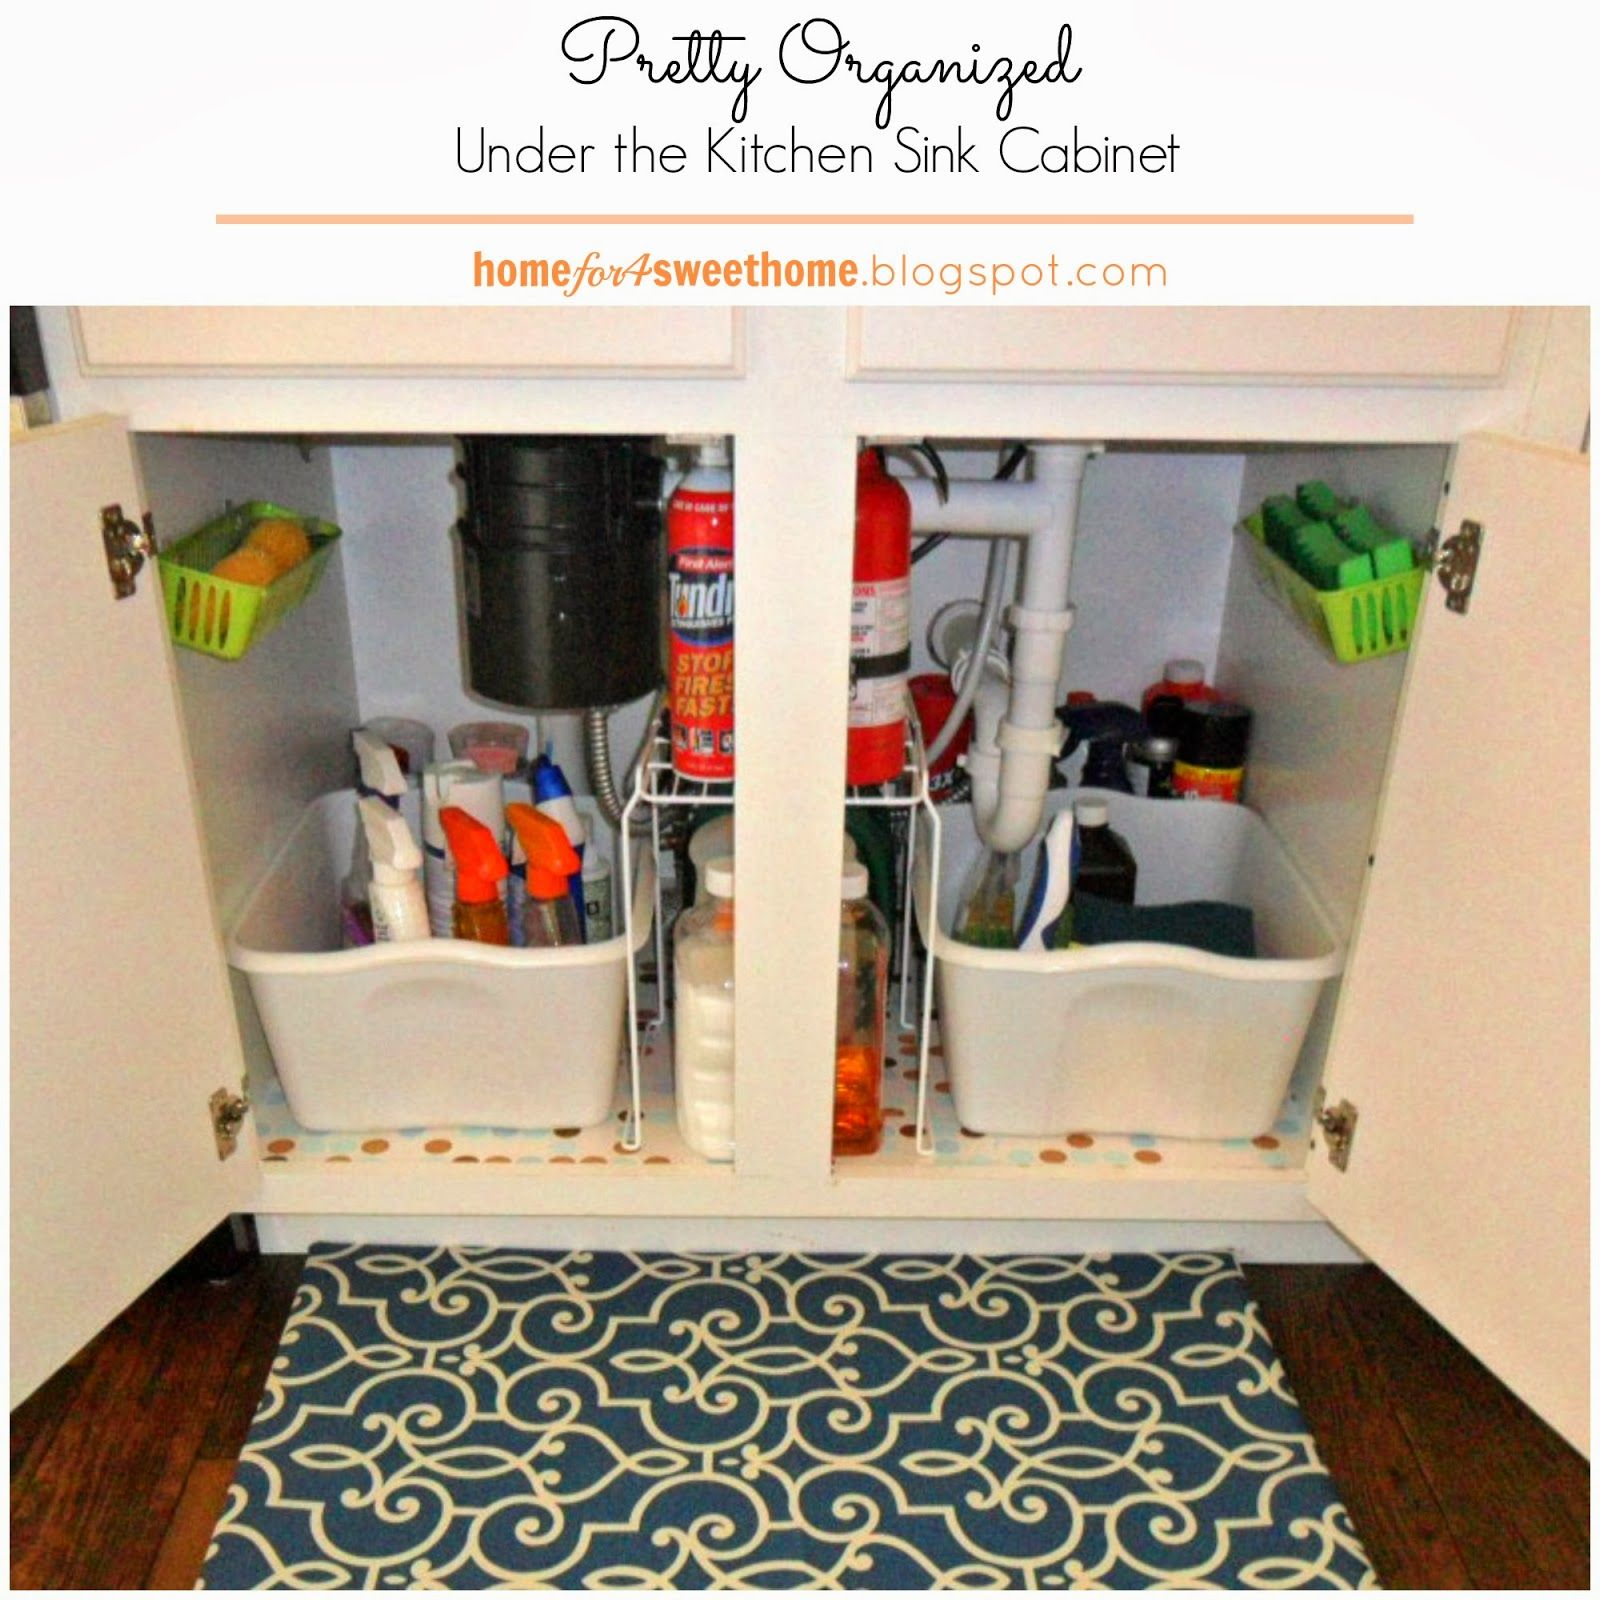 organization of easy cabinets ideas organizing new kitchen are beyond cabinet that